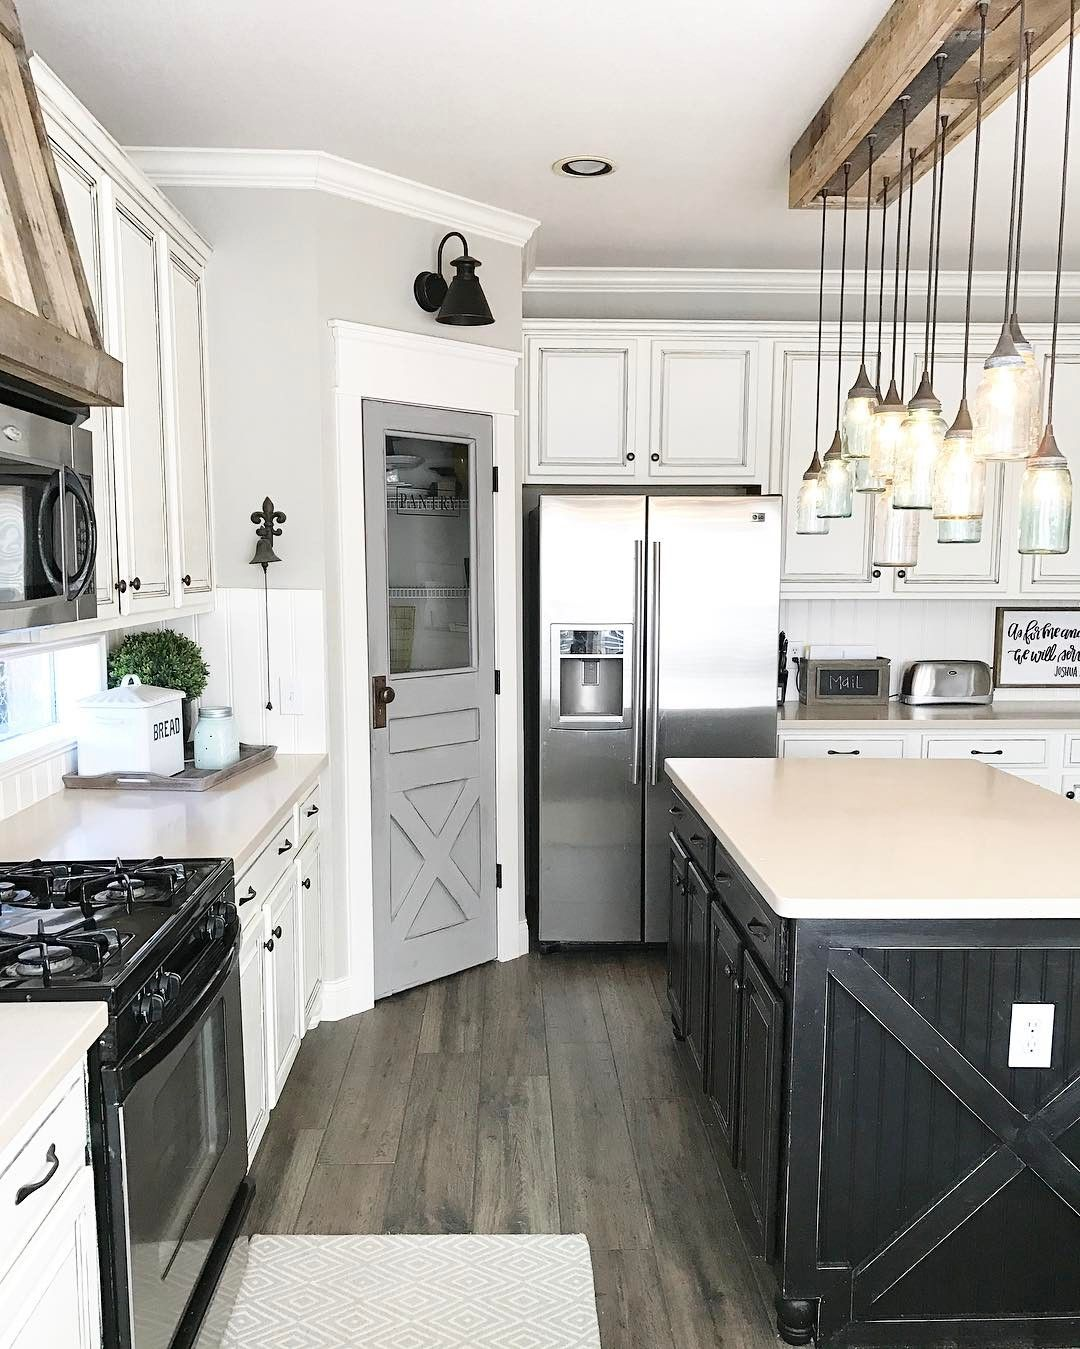 2 123 Likes 137 Comments Holly Our Faux Farmhouse Ourfauxfarmhouse On Instagram Rustic Farmhouse Kitchen Farmhouse Kitchen Decor Kitchen Inspirations